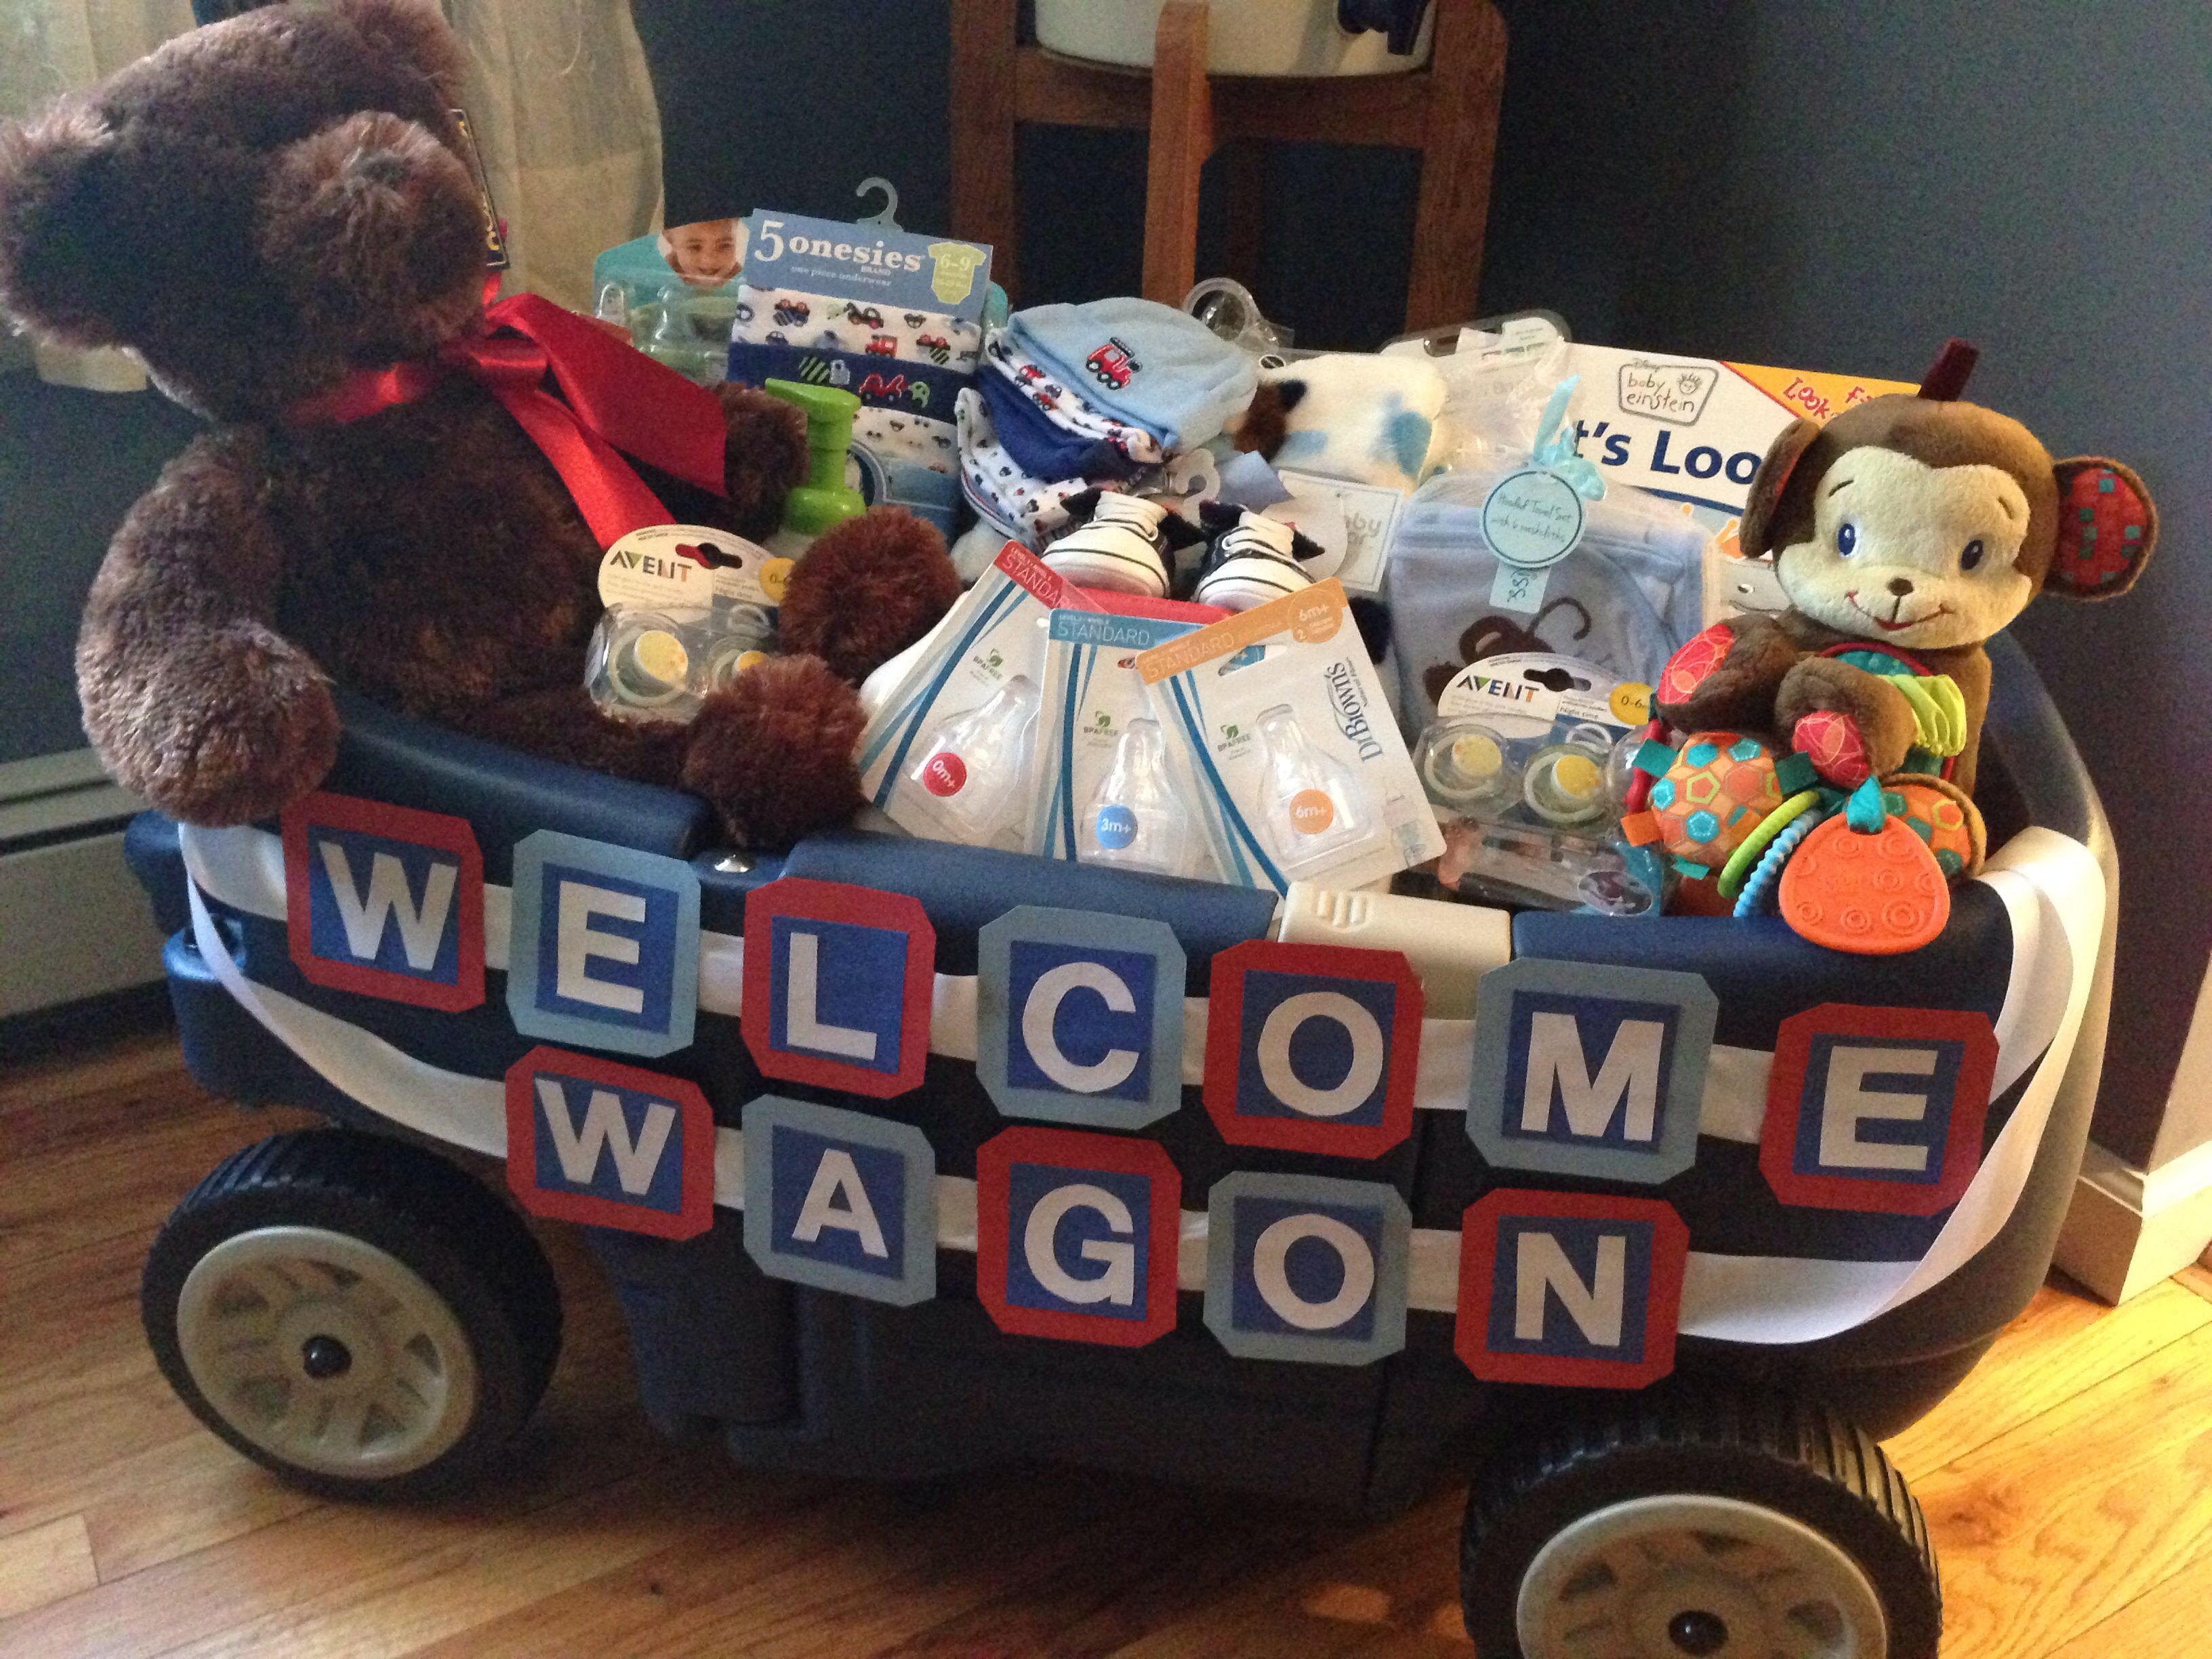 Wel e wagon ll it with books toys bibs diapers wipes and